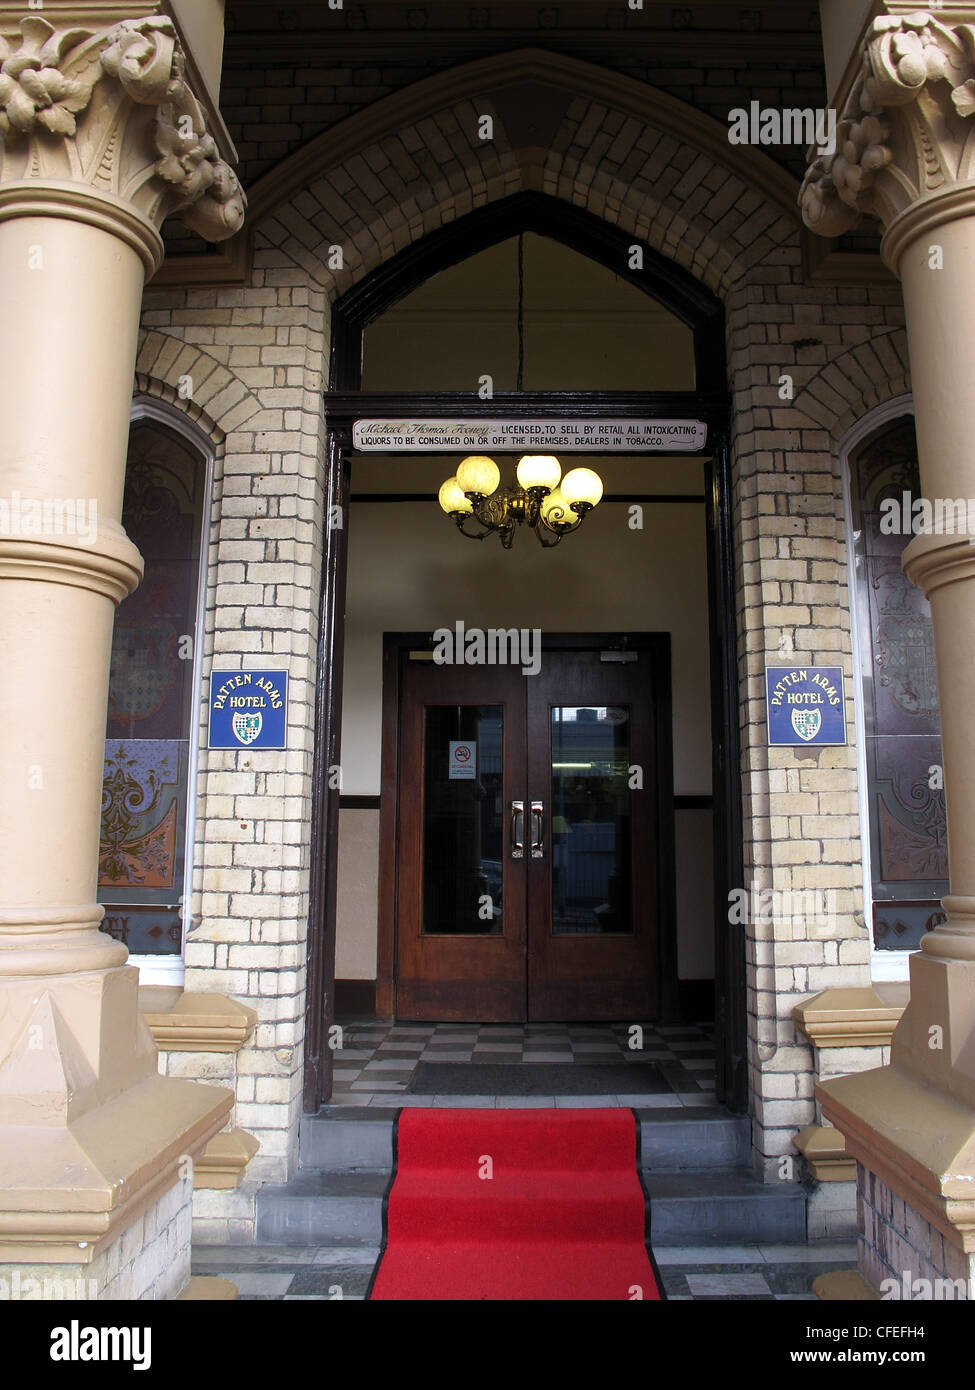 Entrance of the Patten Arms Hotel, Parker Street, Bank Quay, Warrington, Cheshire, England, UK - Stock Image